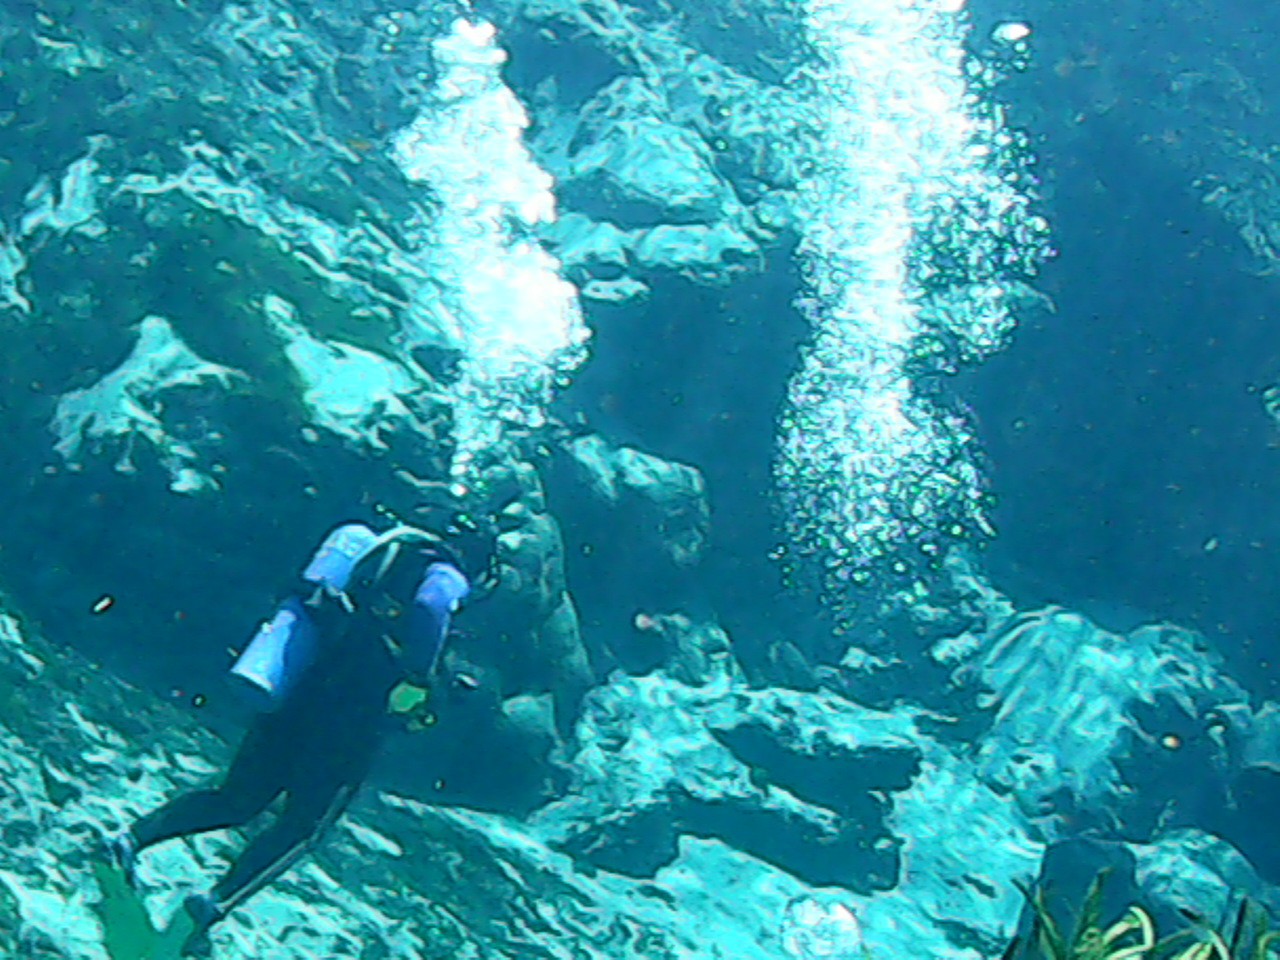 Scuba dive in Alexander Springs